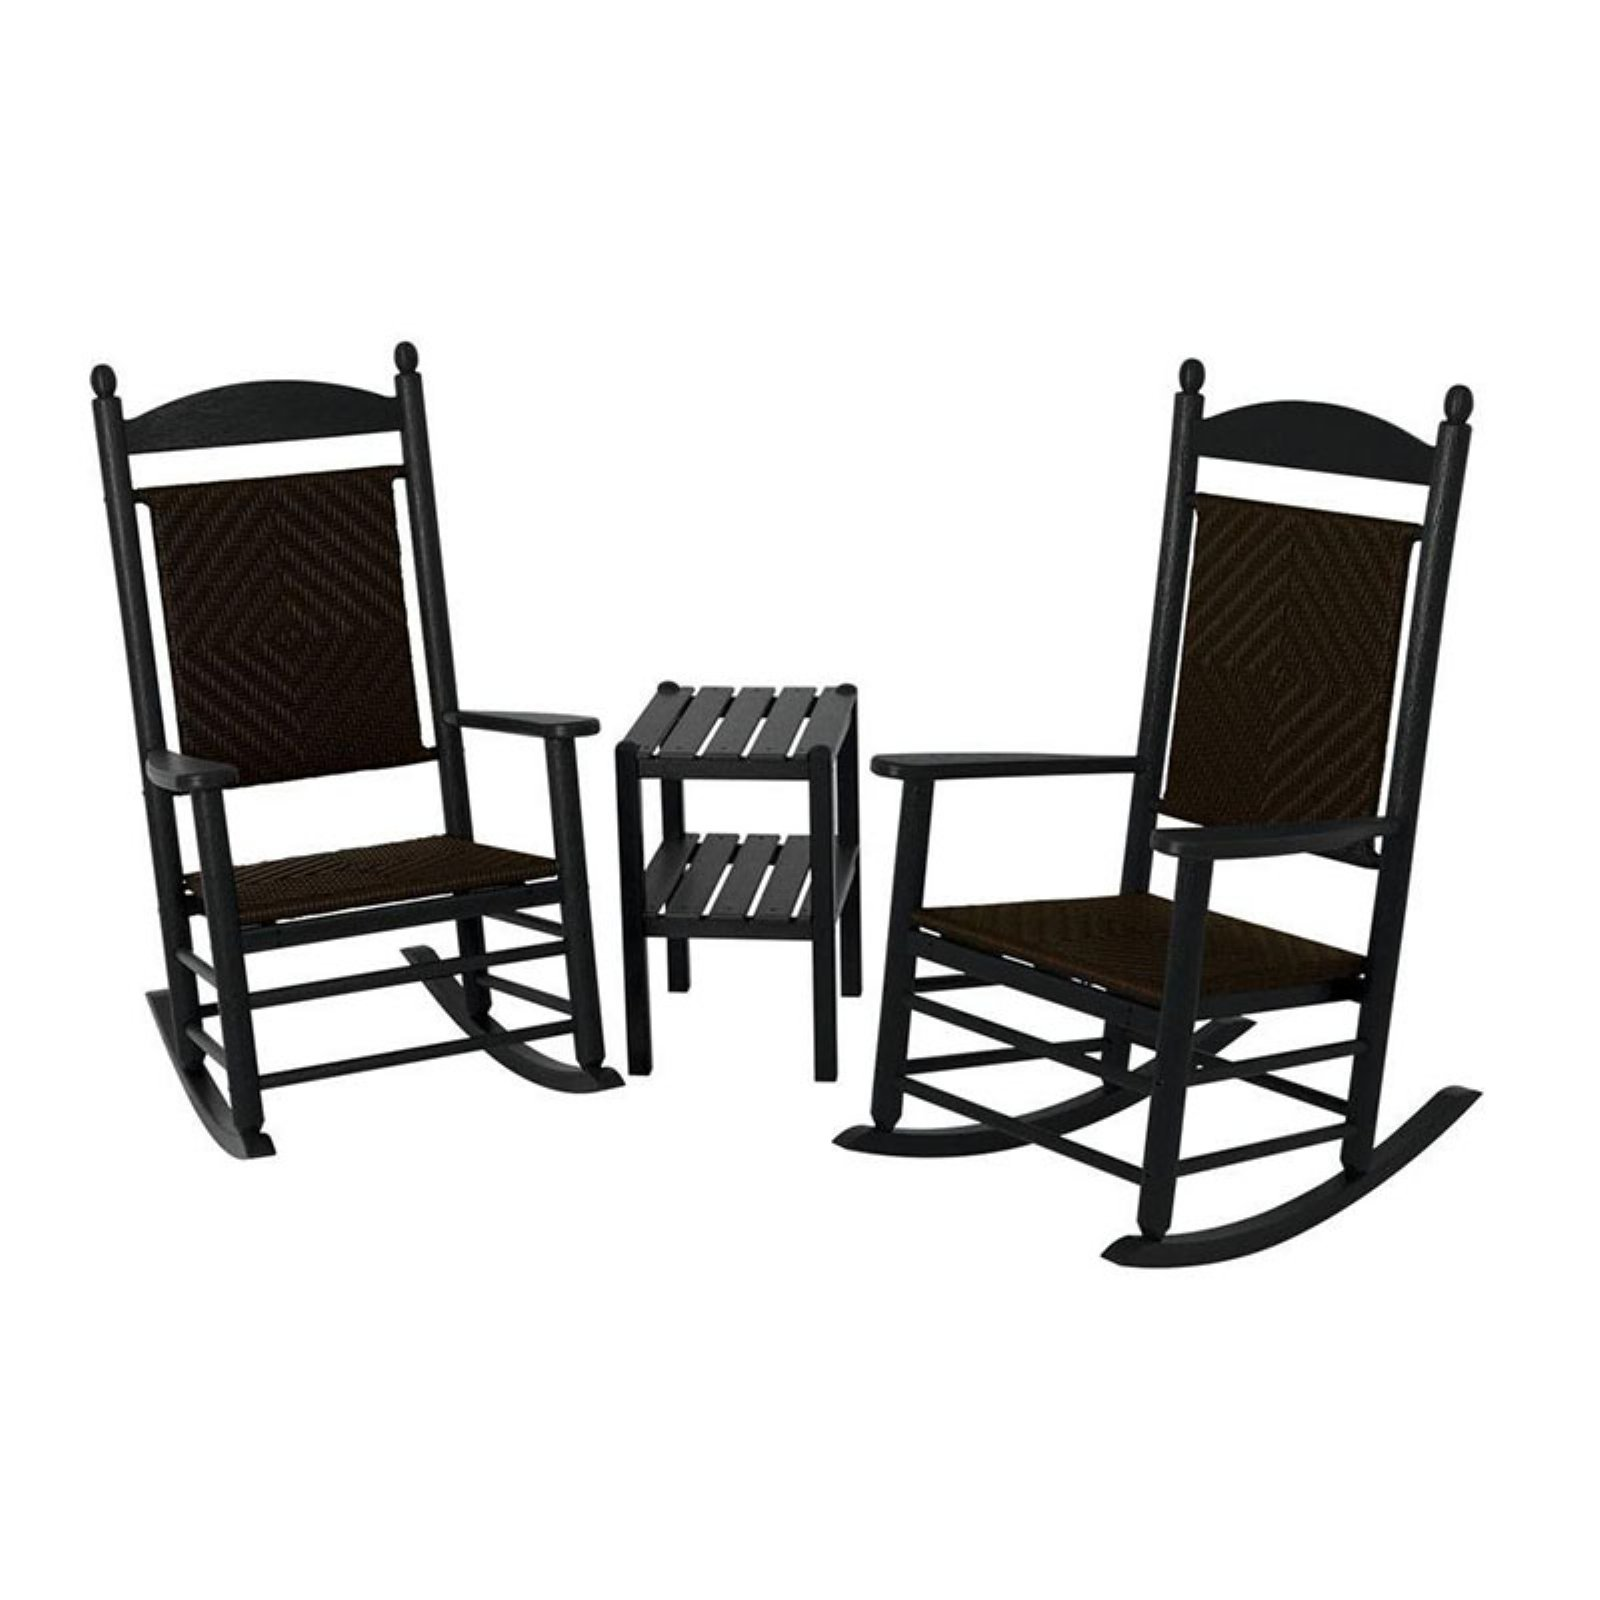 POLYWOOD® Jefferson 3 pc. Recycled Plastic Woven Rocker Set with Side Table